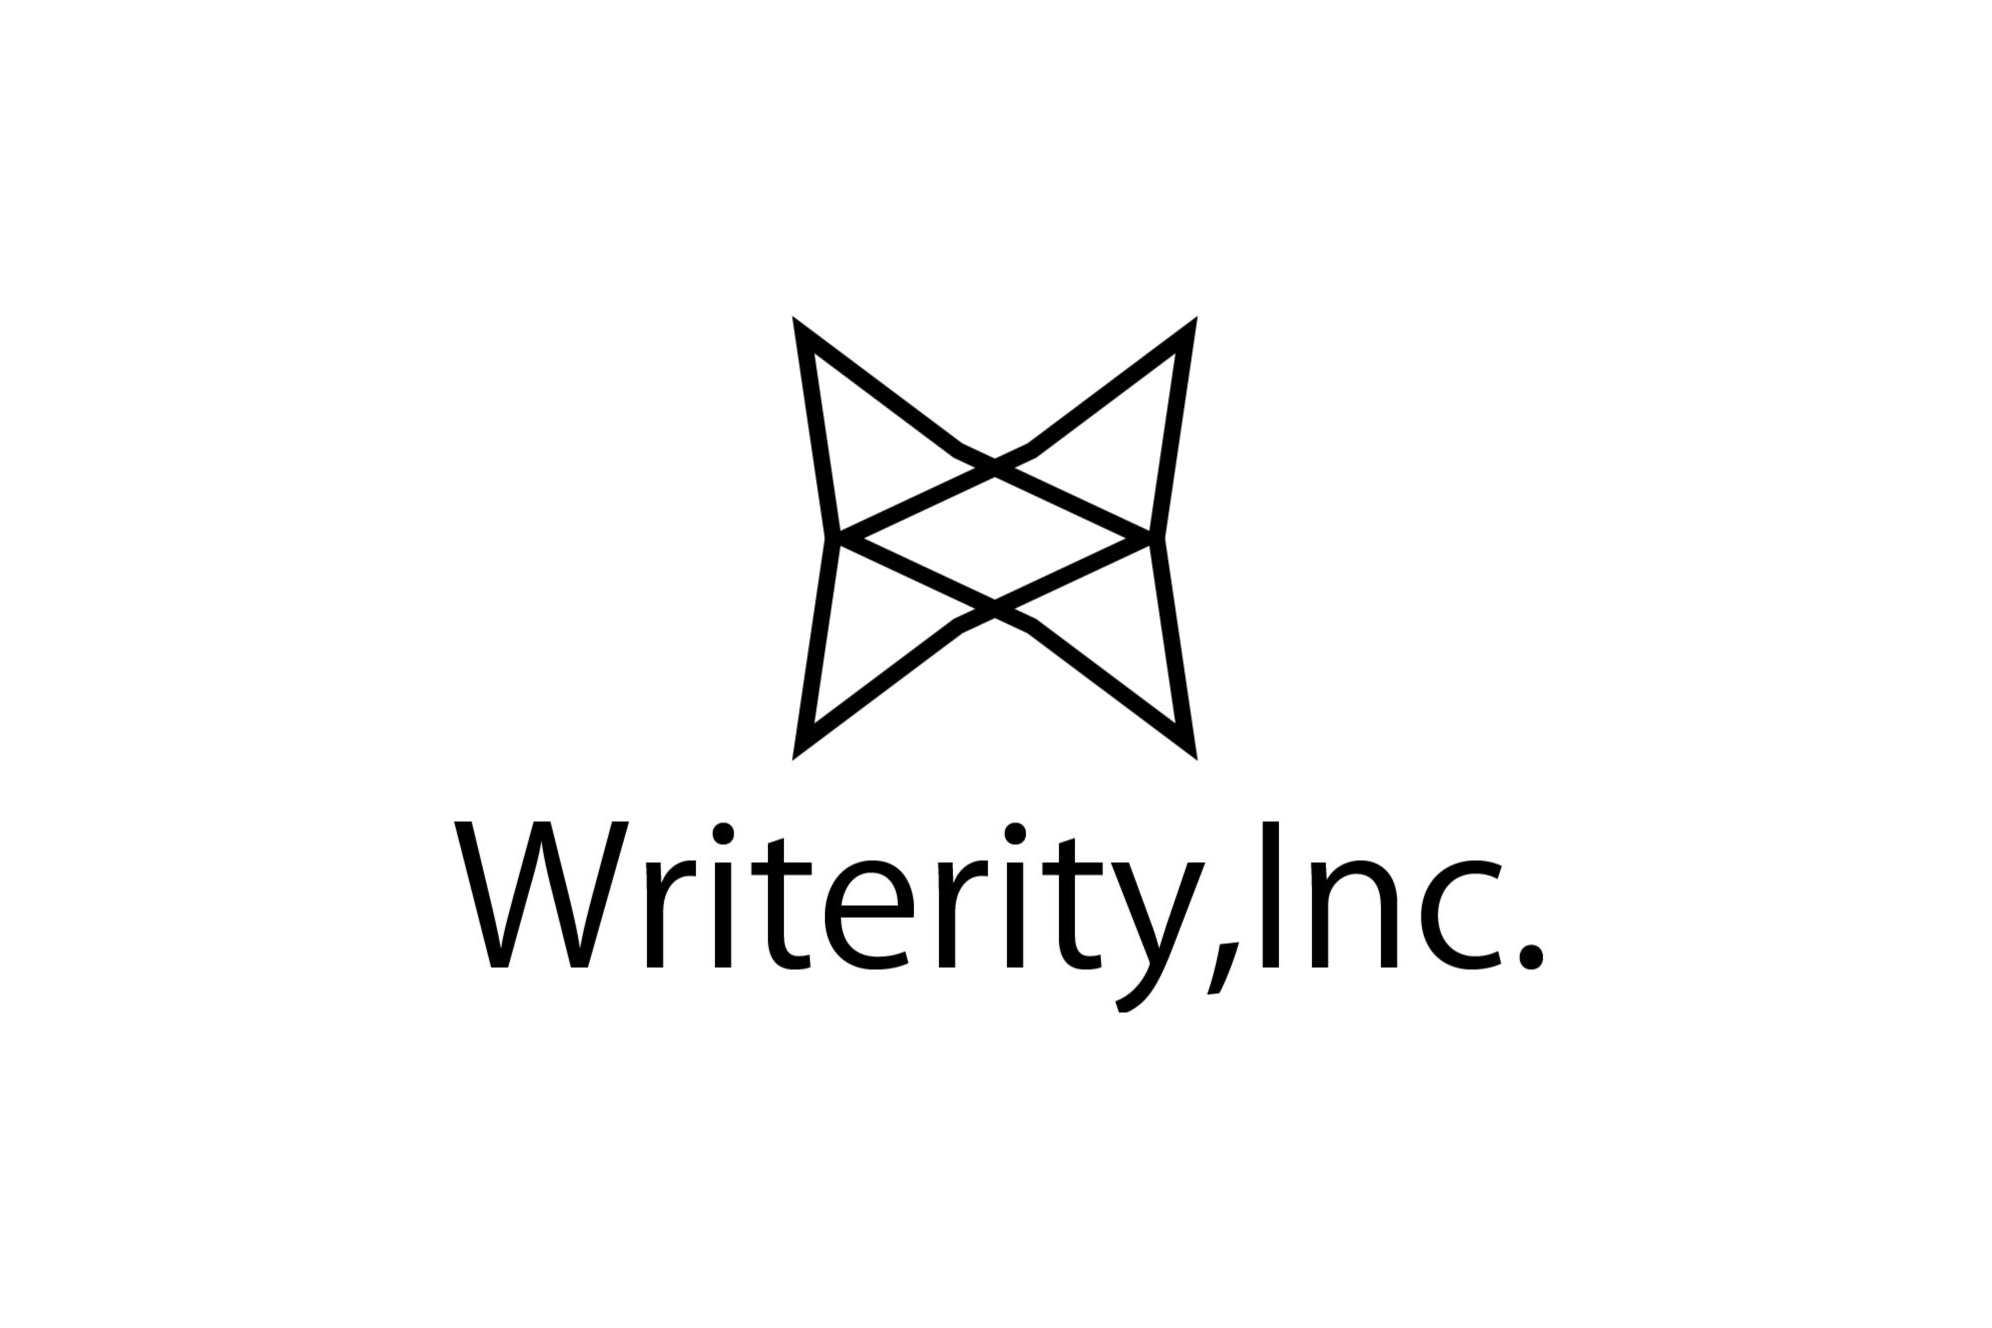 Welcome to Writerity